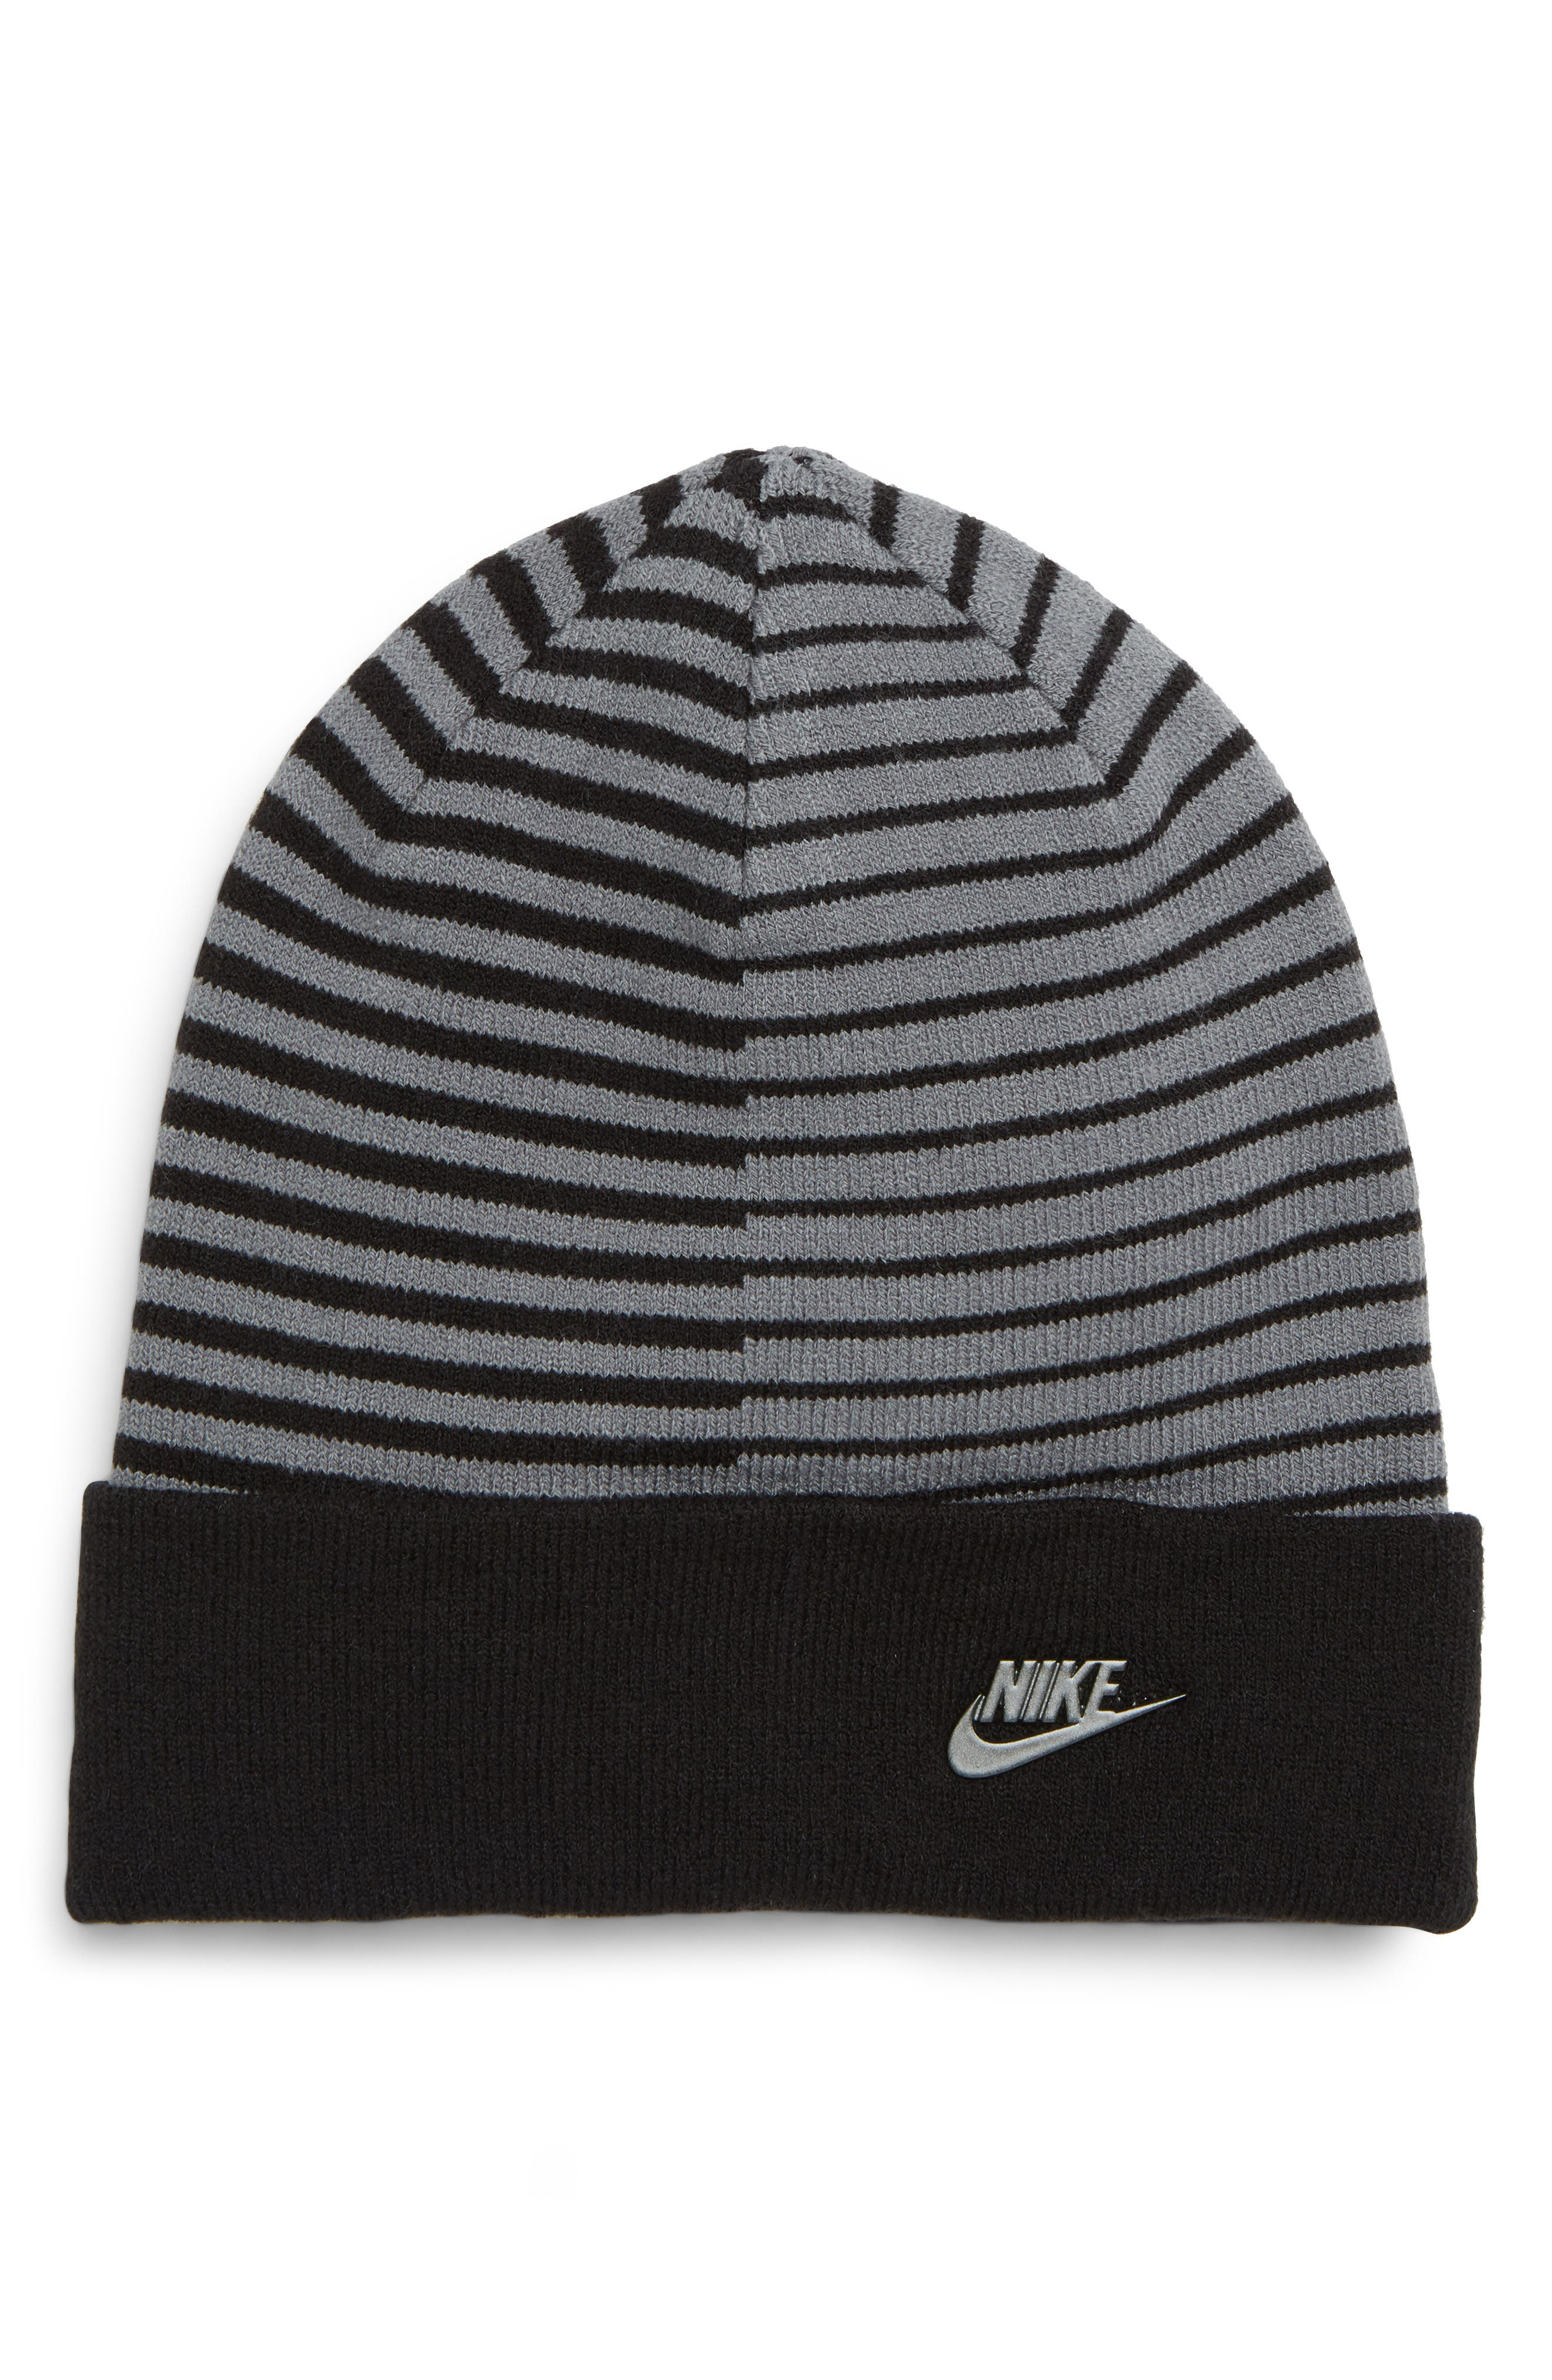 NSW Stripe Beanie,                             Main thumbnail 1, color,                             BLACK